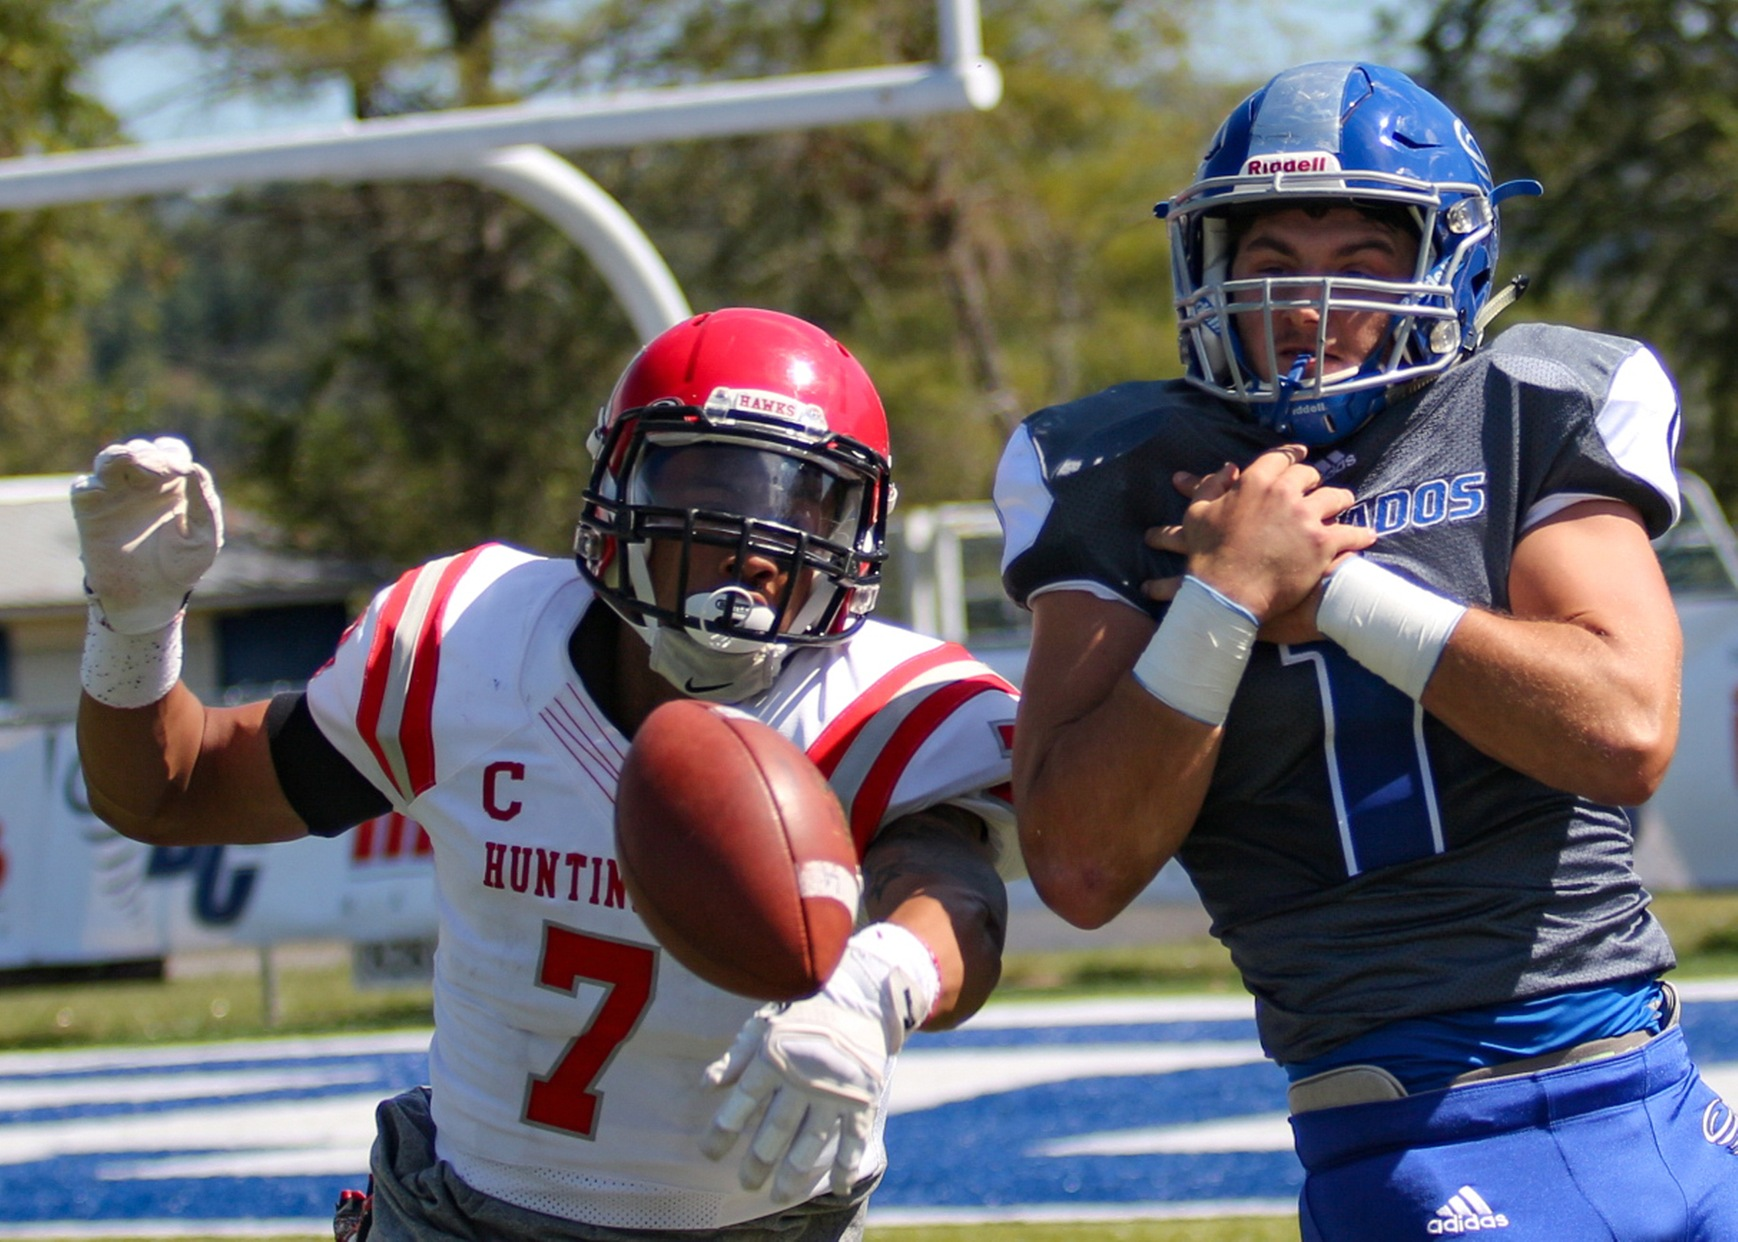 Anthony Wood and the Huntingdon defense held Brevard College to 275 yards of offense and 10 points in Saturday's win. (Photo by Carrie Bump)